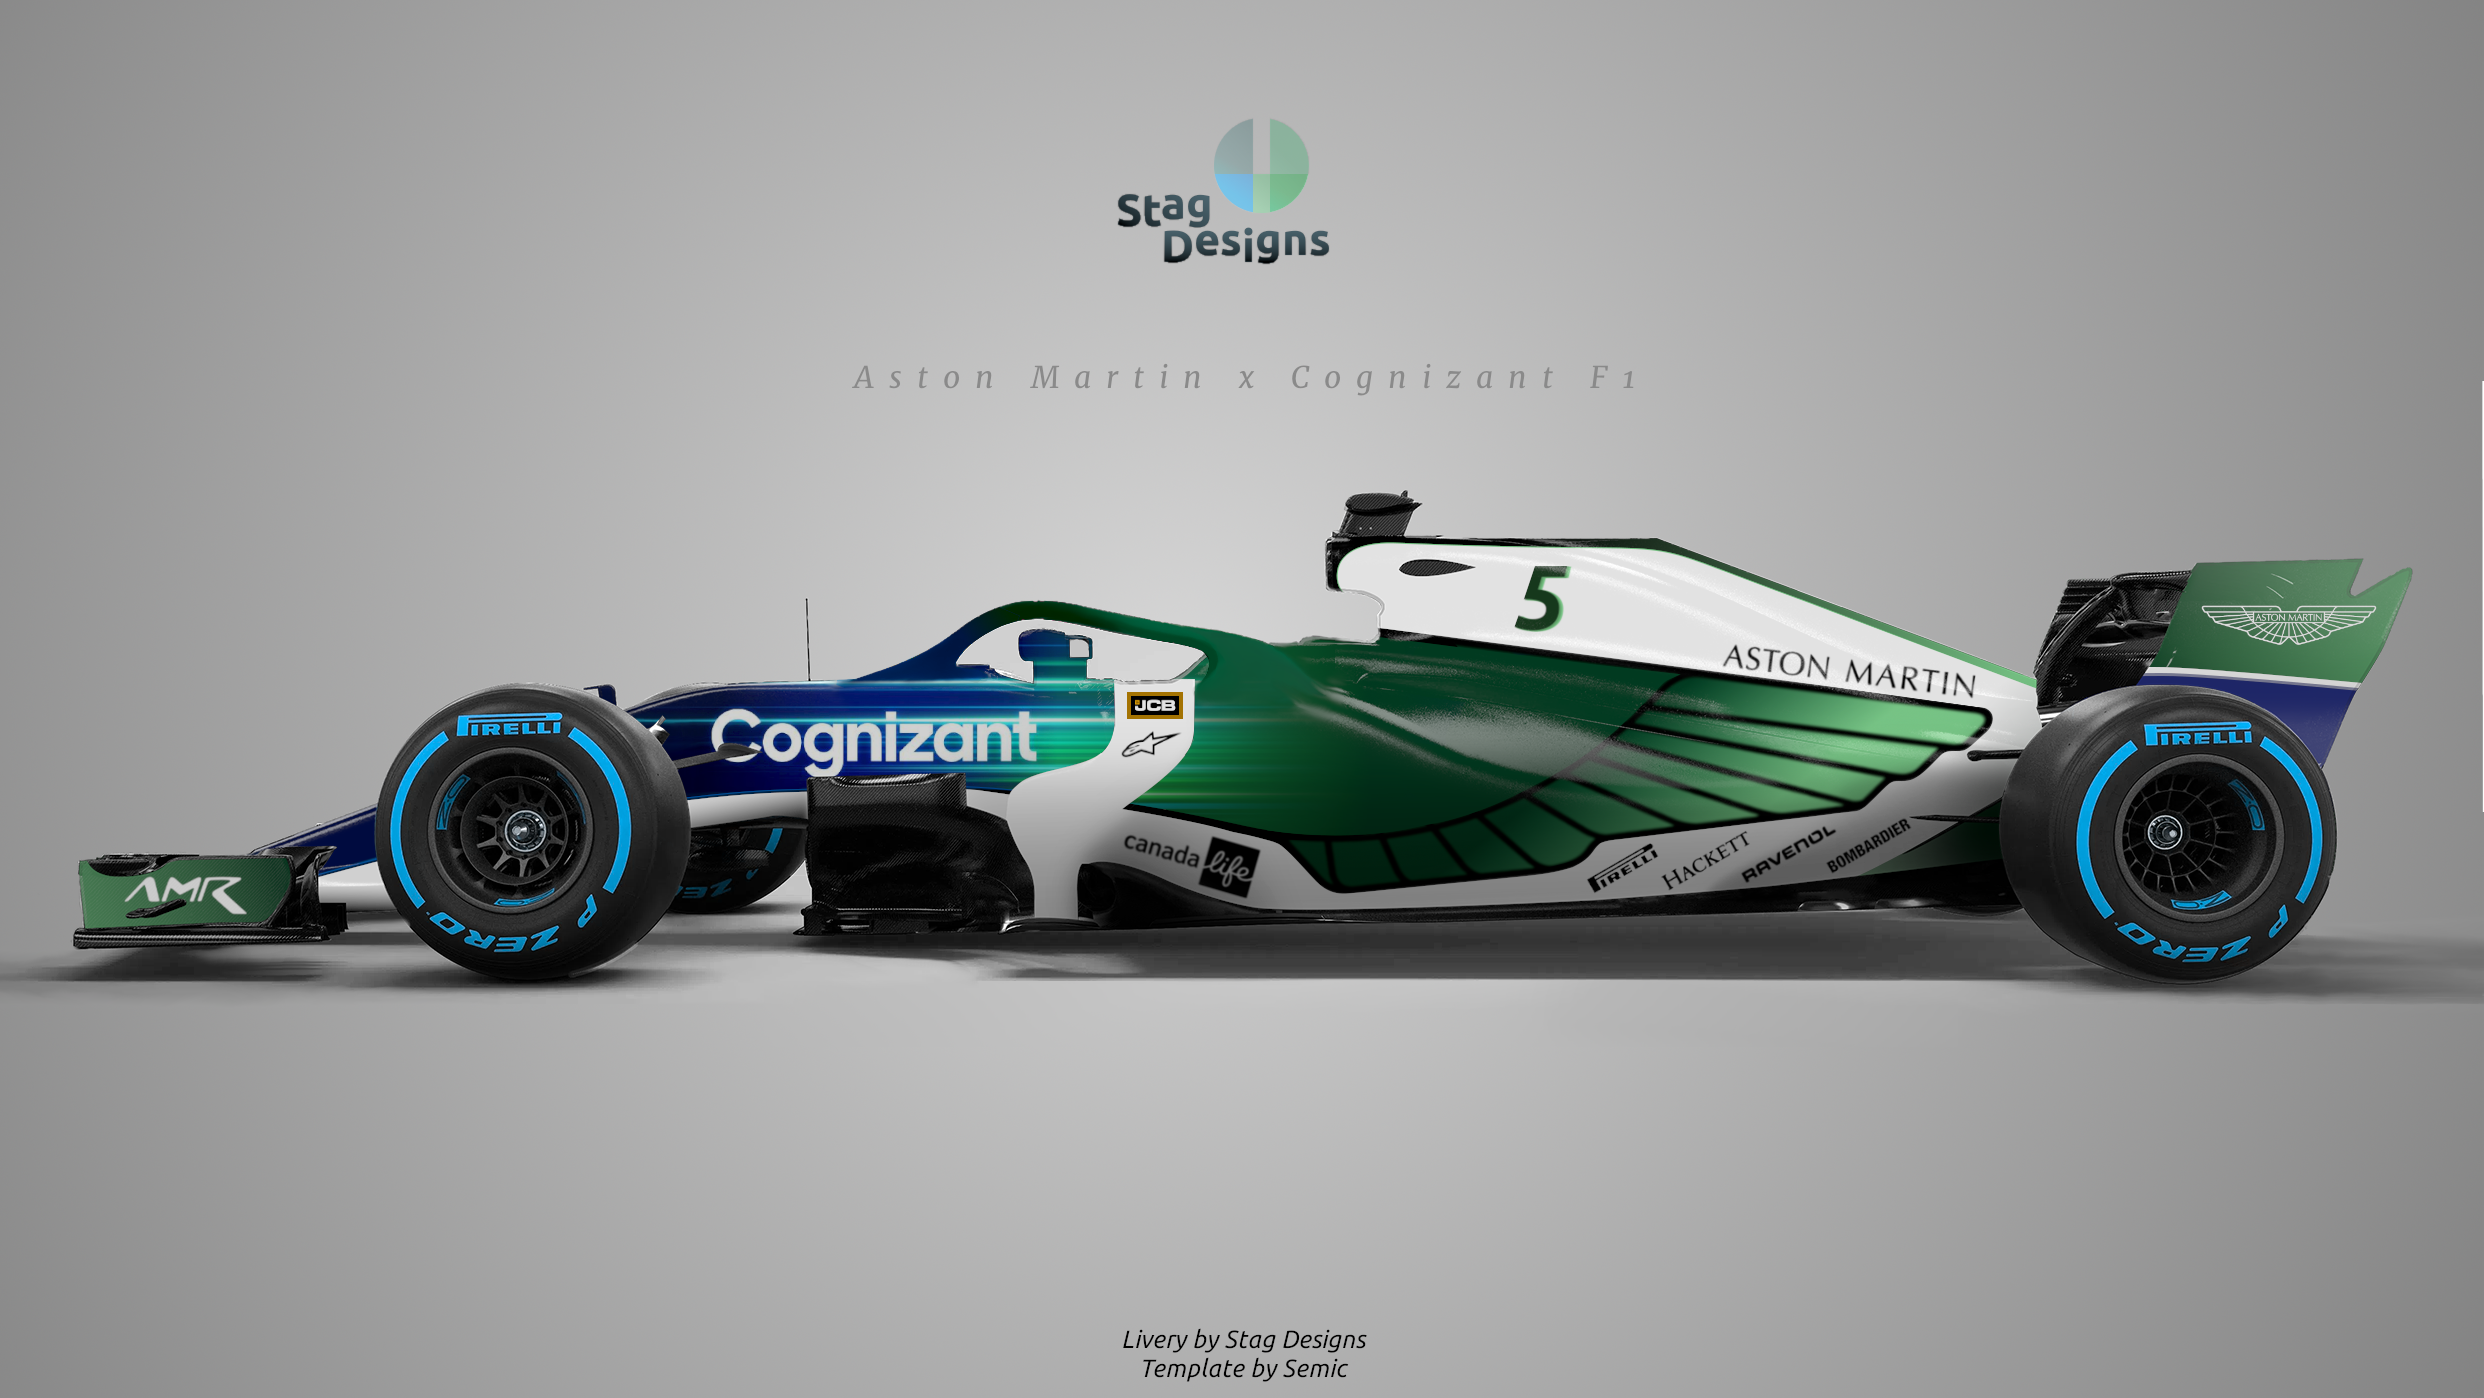 Aston Martin Racing 2021 green F1 Cognizant livery concept - Formula1news.co.uk